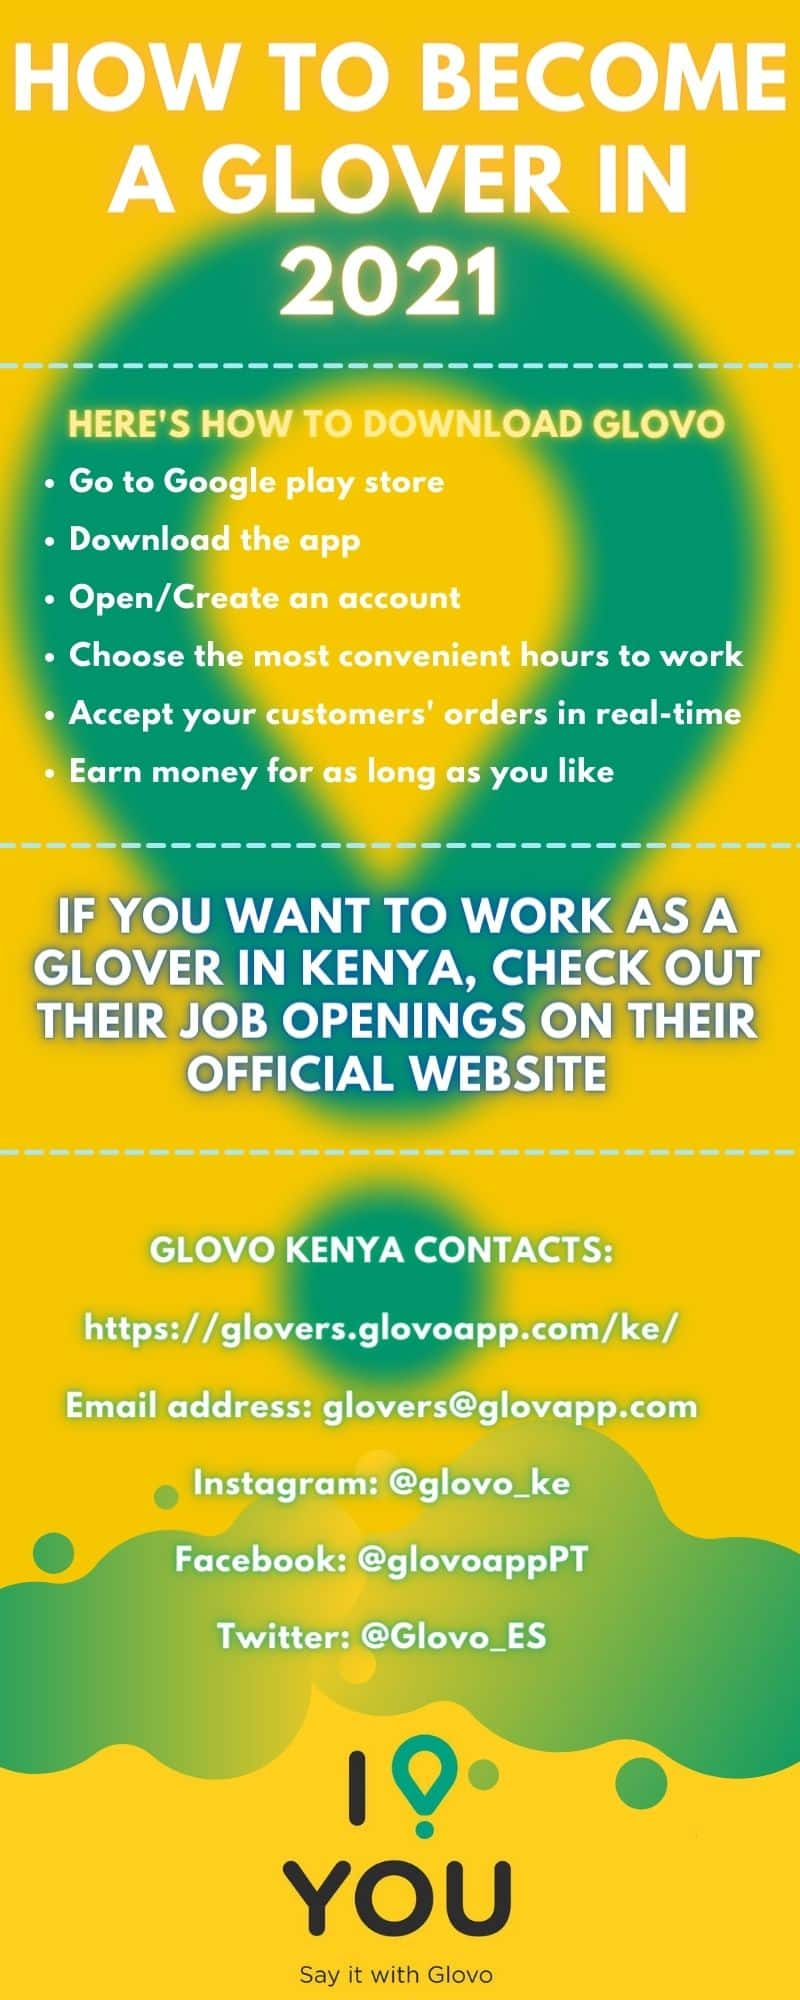 How to become a Glover